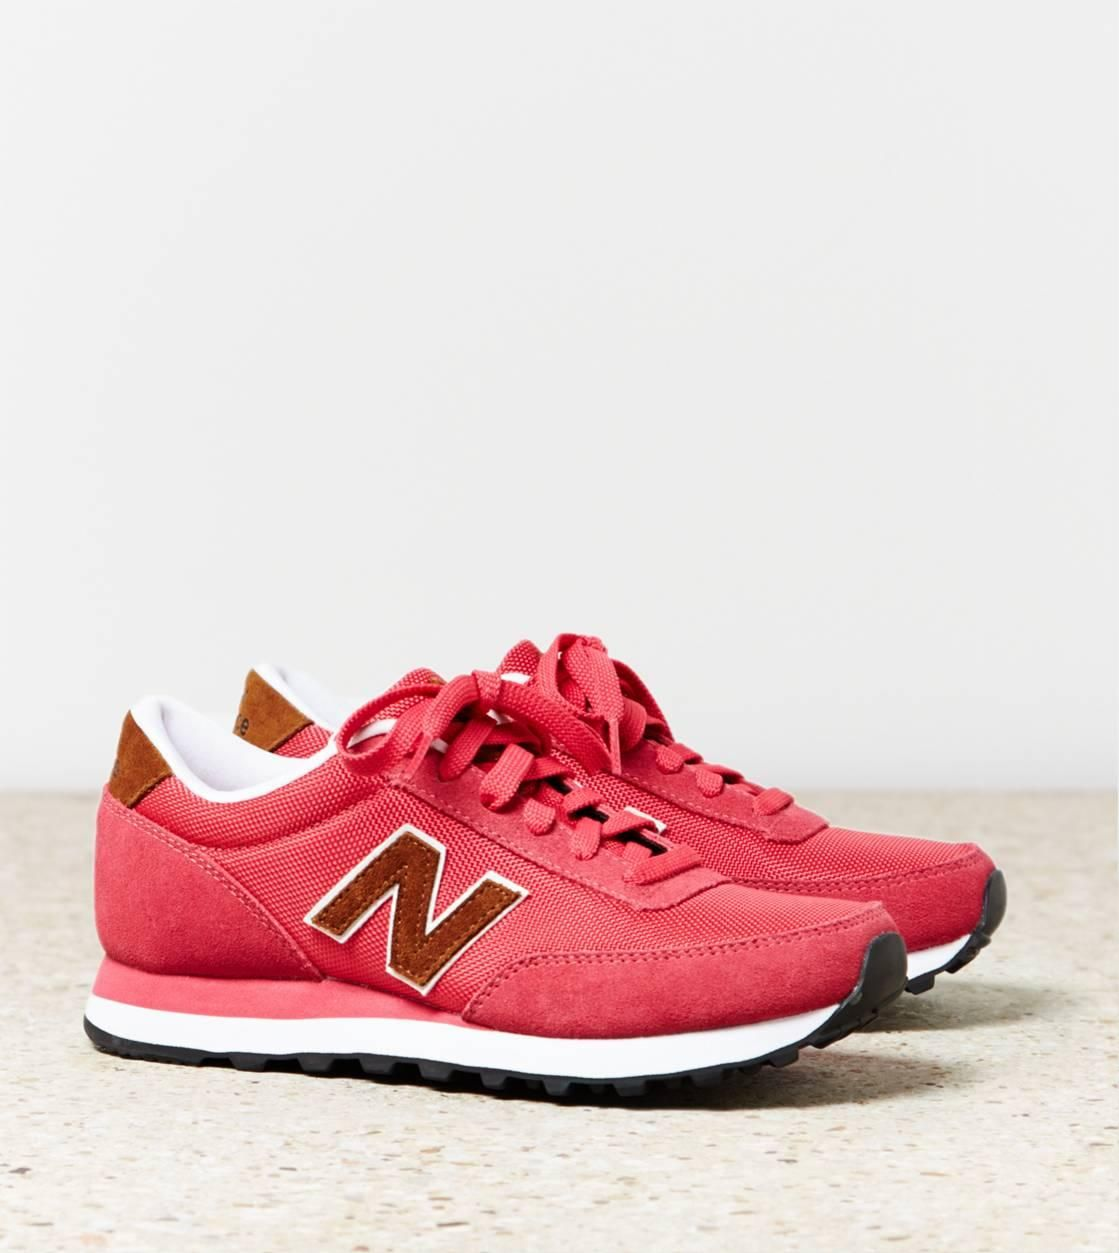 New balance recycled shoes - New Balance 501 Sneaker In Red